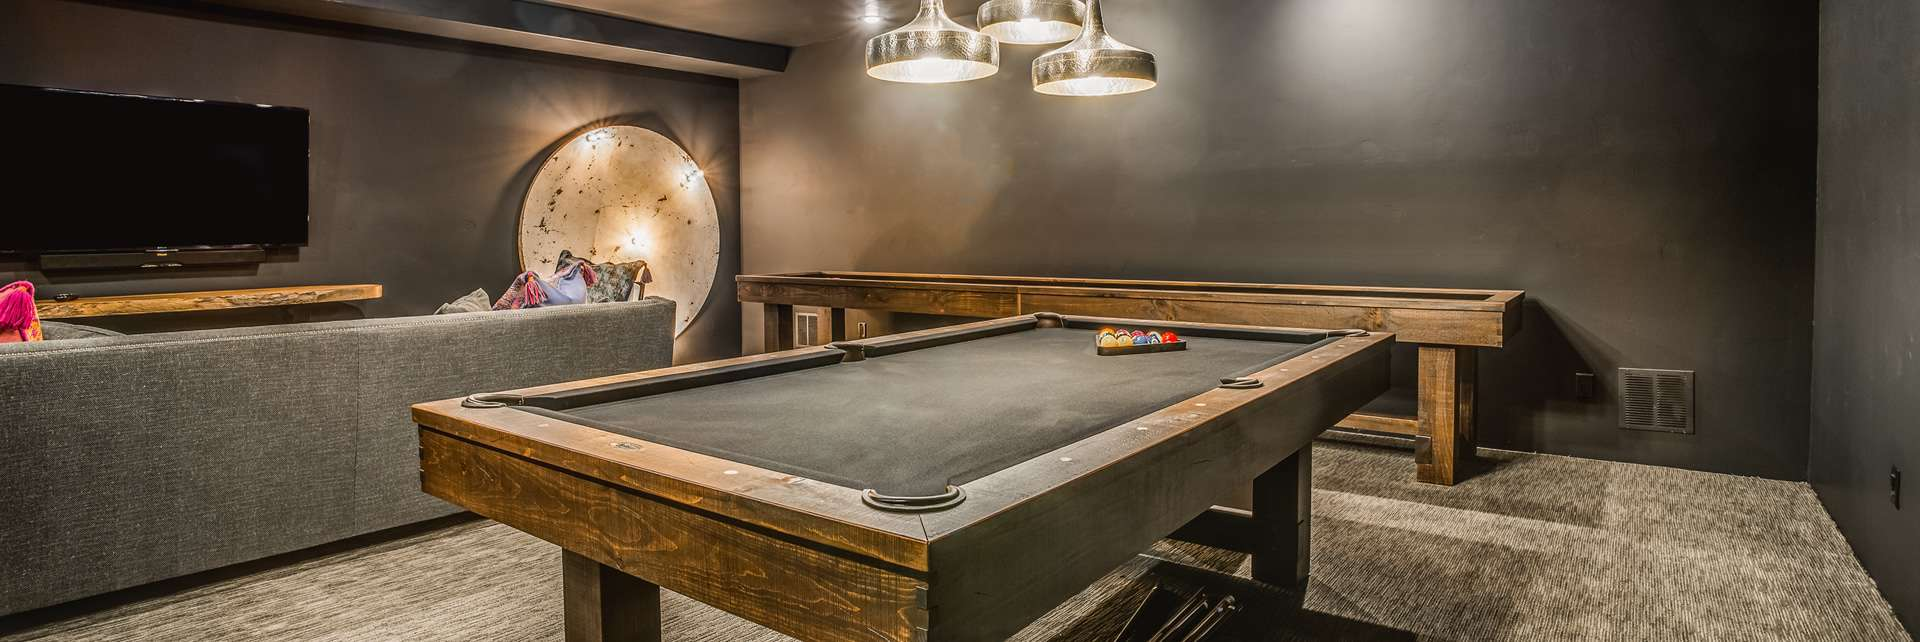 Family Recreation Products Maryland Pool Tables Game Room Store - Pool table repair maryland